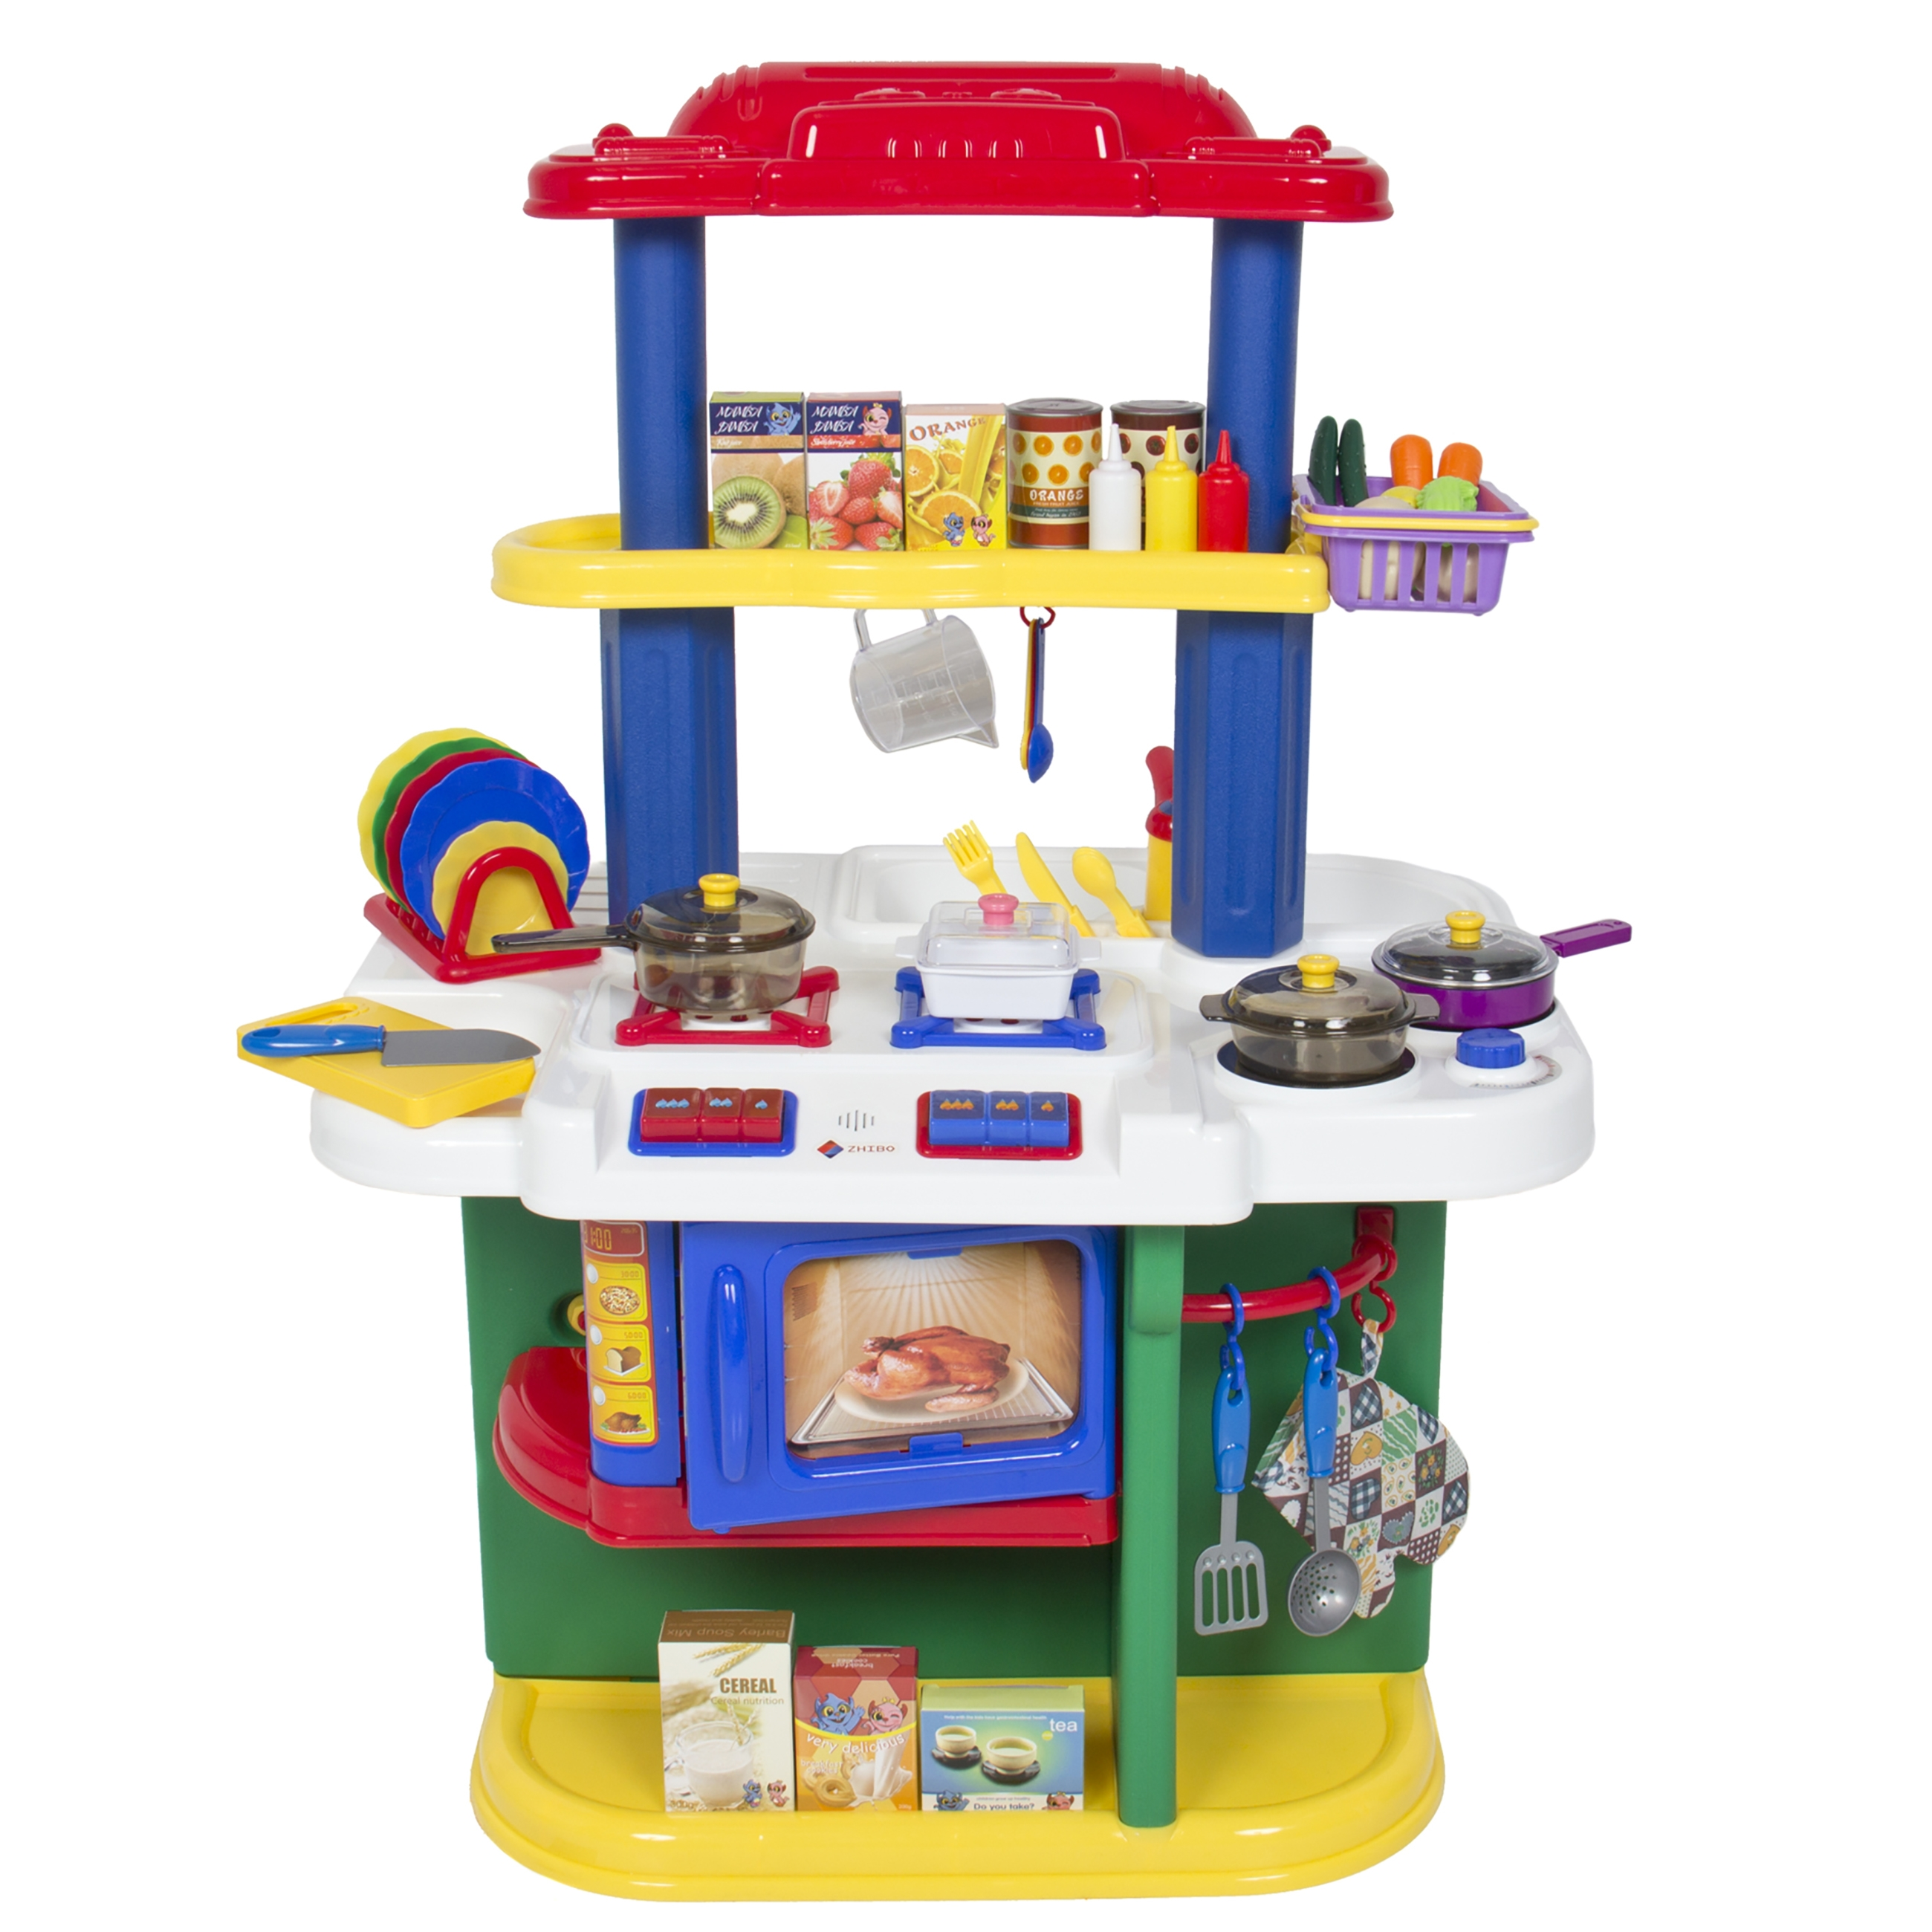 Permalink to Children'S Kitchen Play Sets